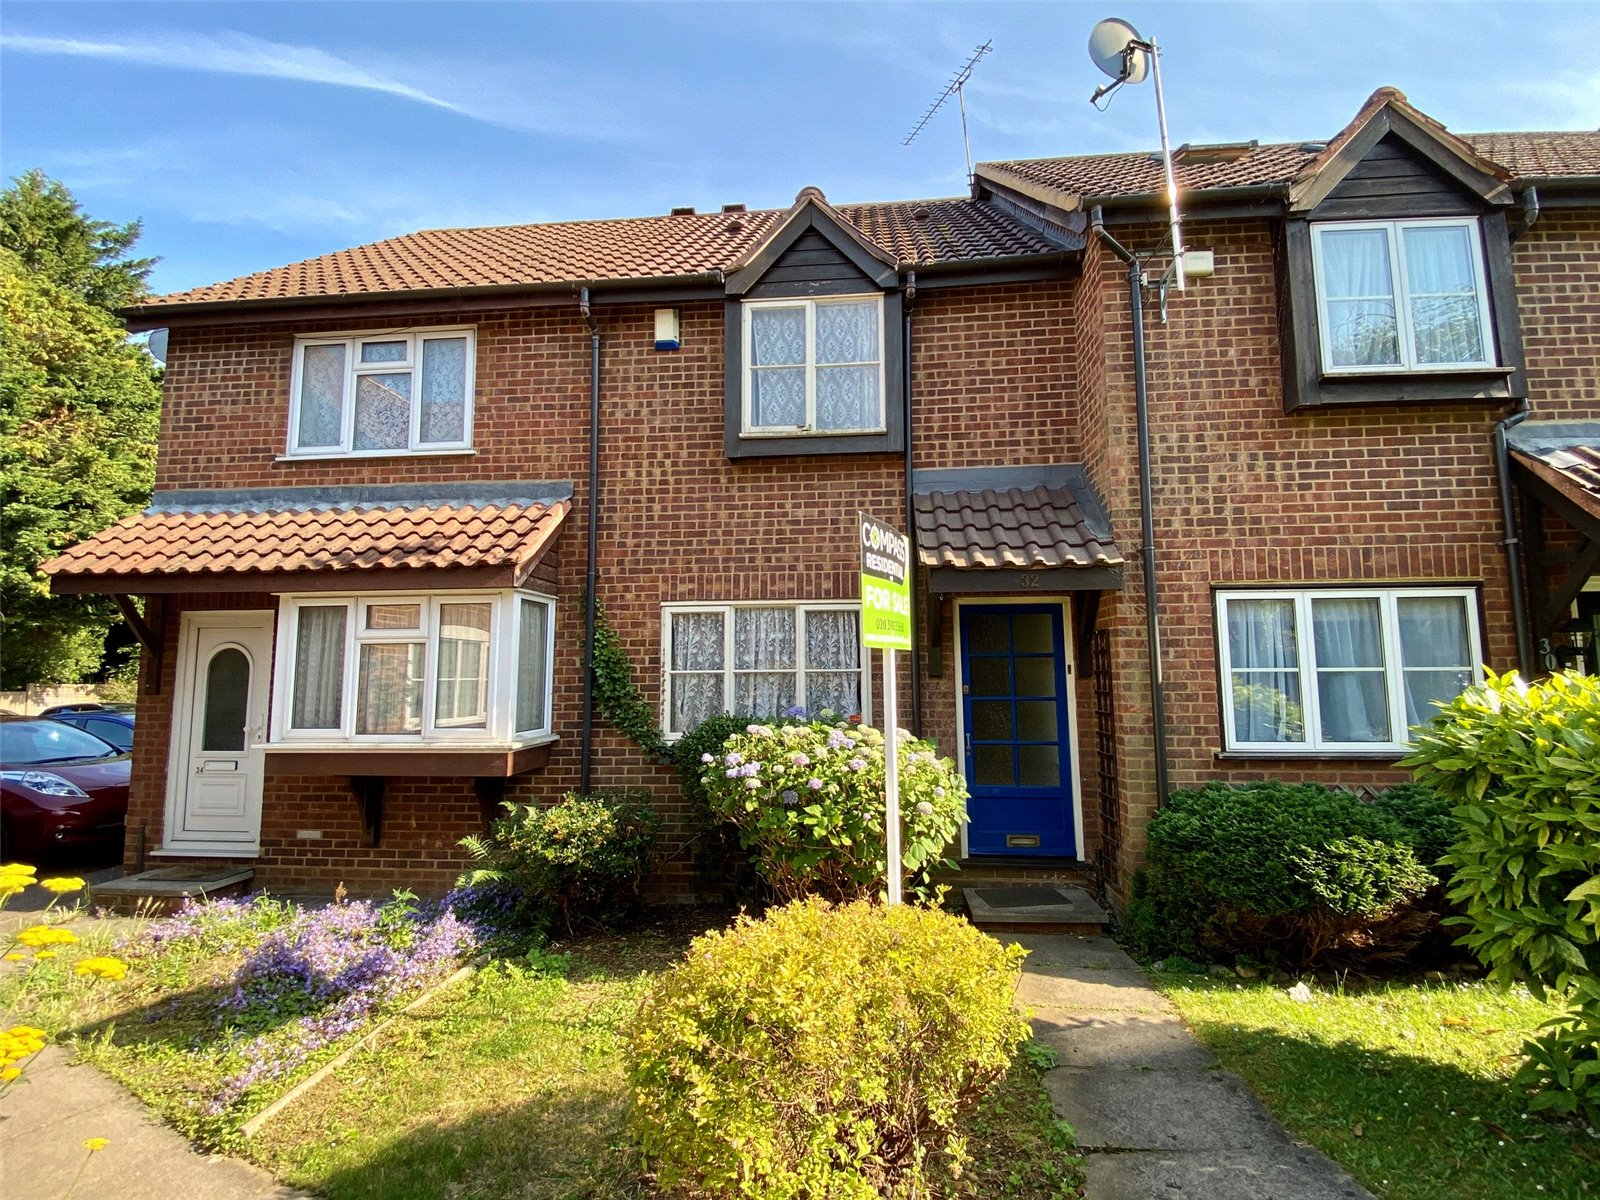 2 bed house for sale in New Barnet, EN5 5JS, EN5